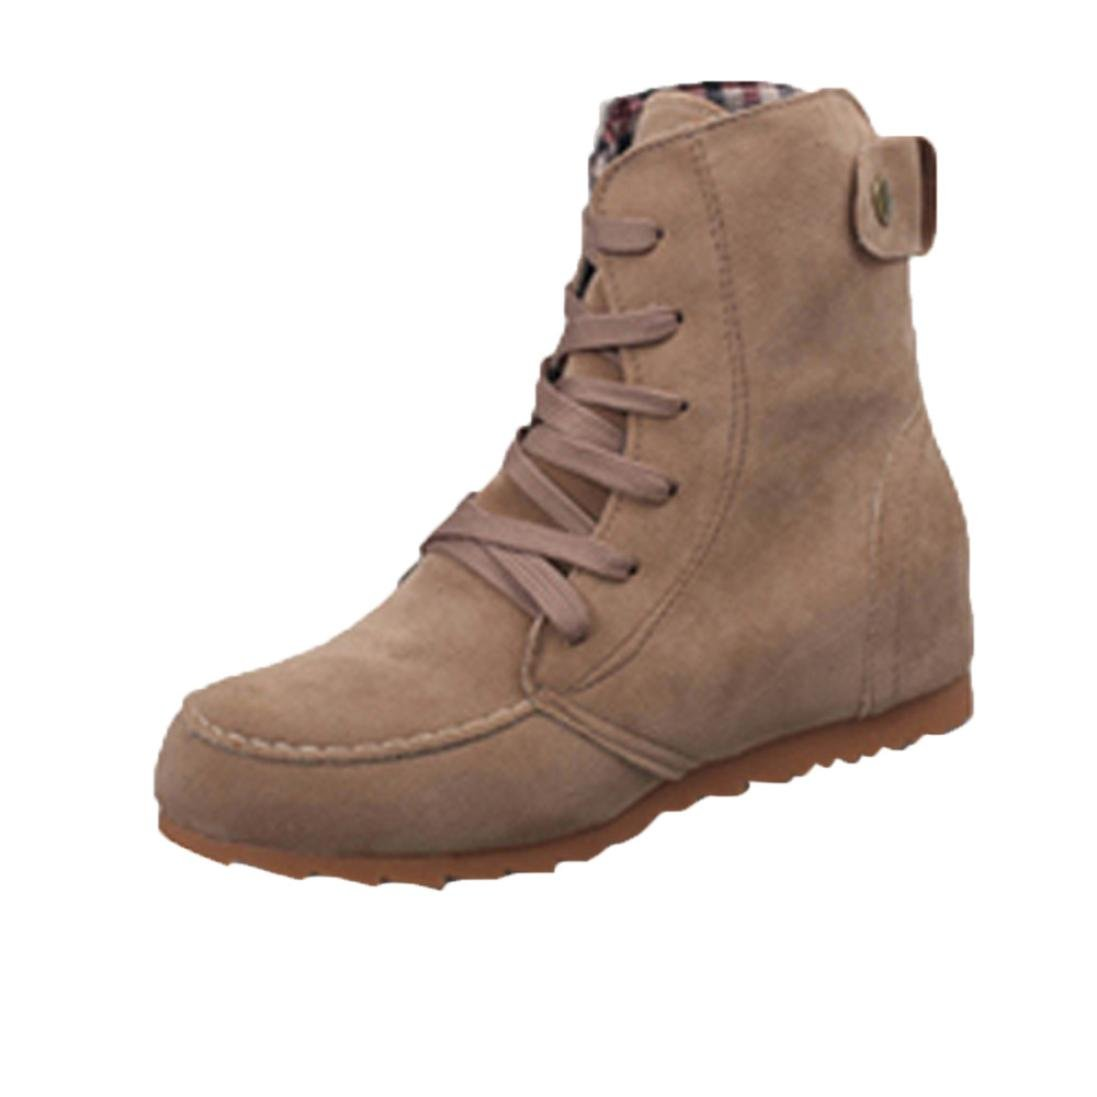 Fullfun Women Flat Ankle Snow Boots,Cool Suede Leather Lace-Up Motorcycle Boot (7, khaki)